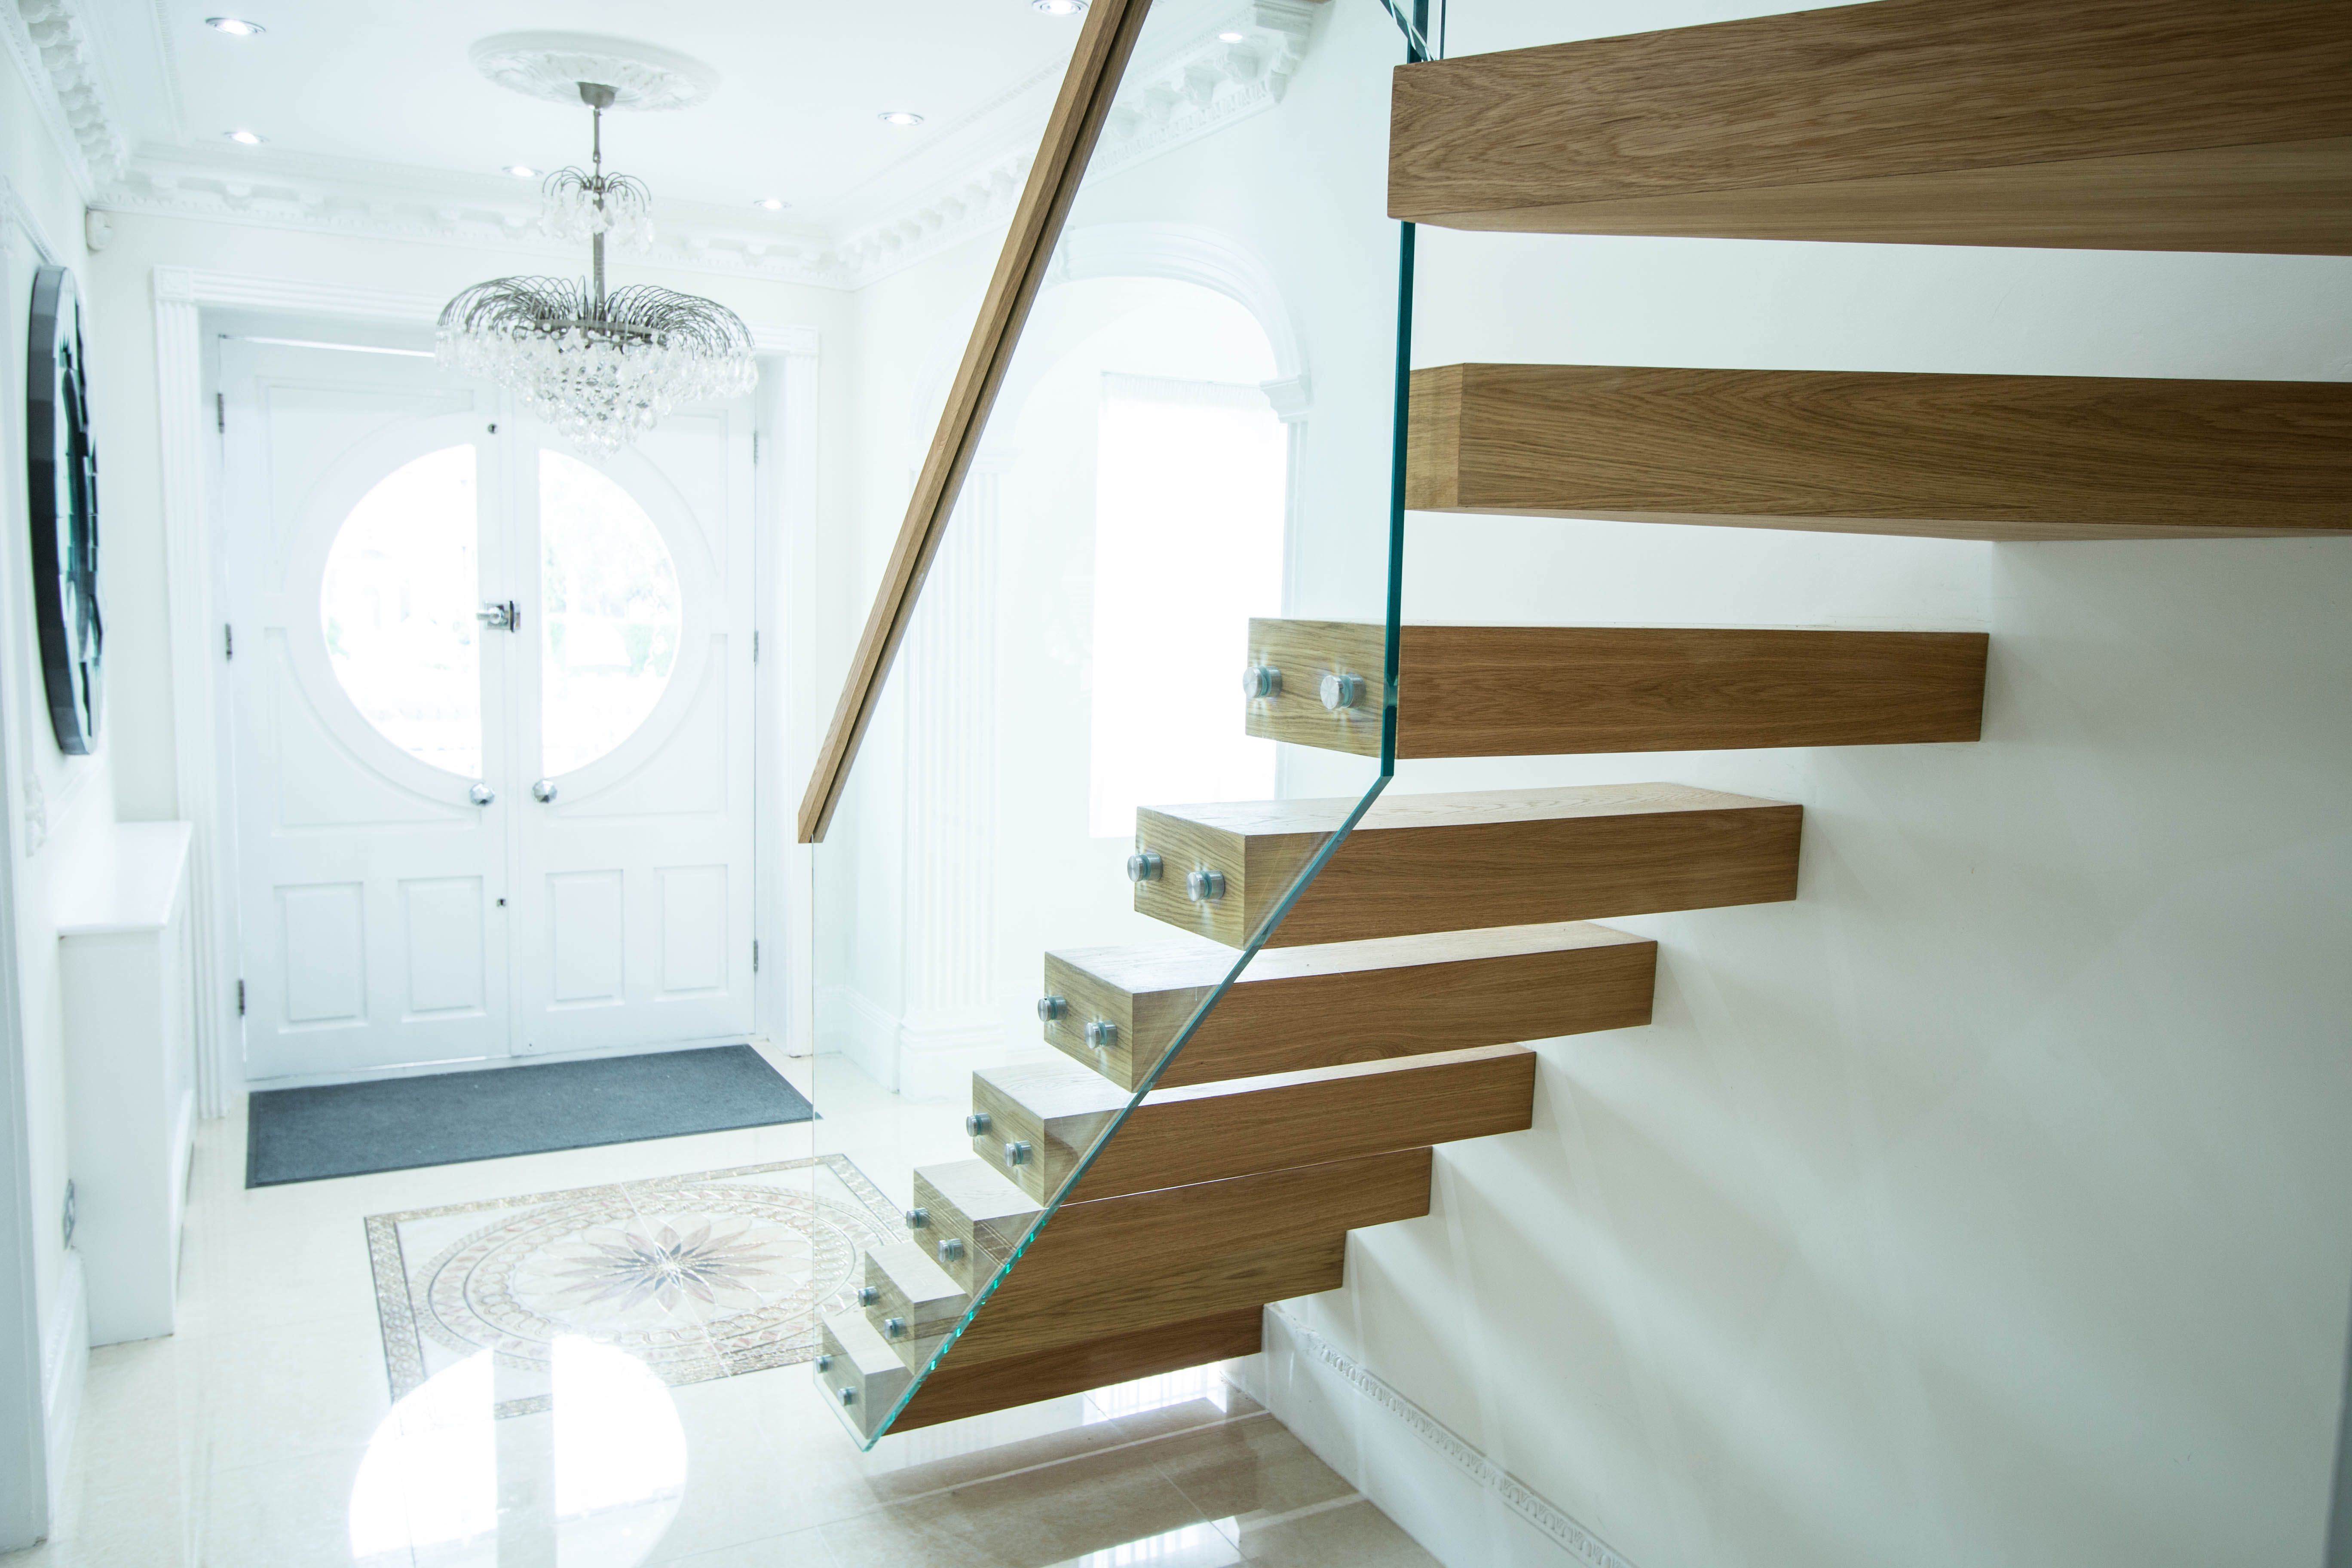 A Stylish Floating Staircase Designed To Fit The Victorian Style Of The  House. The Light